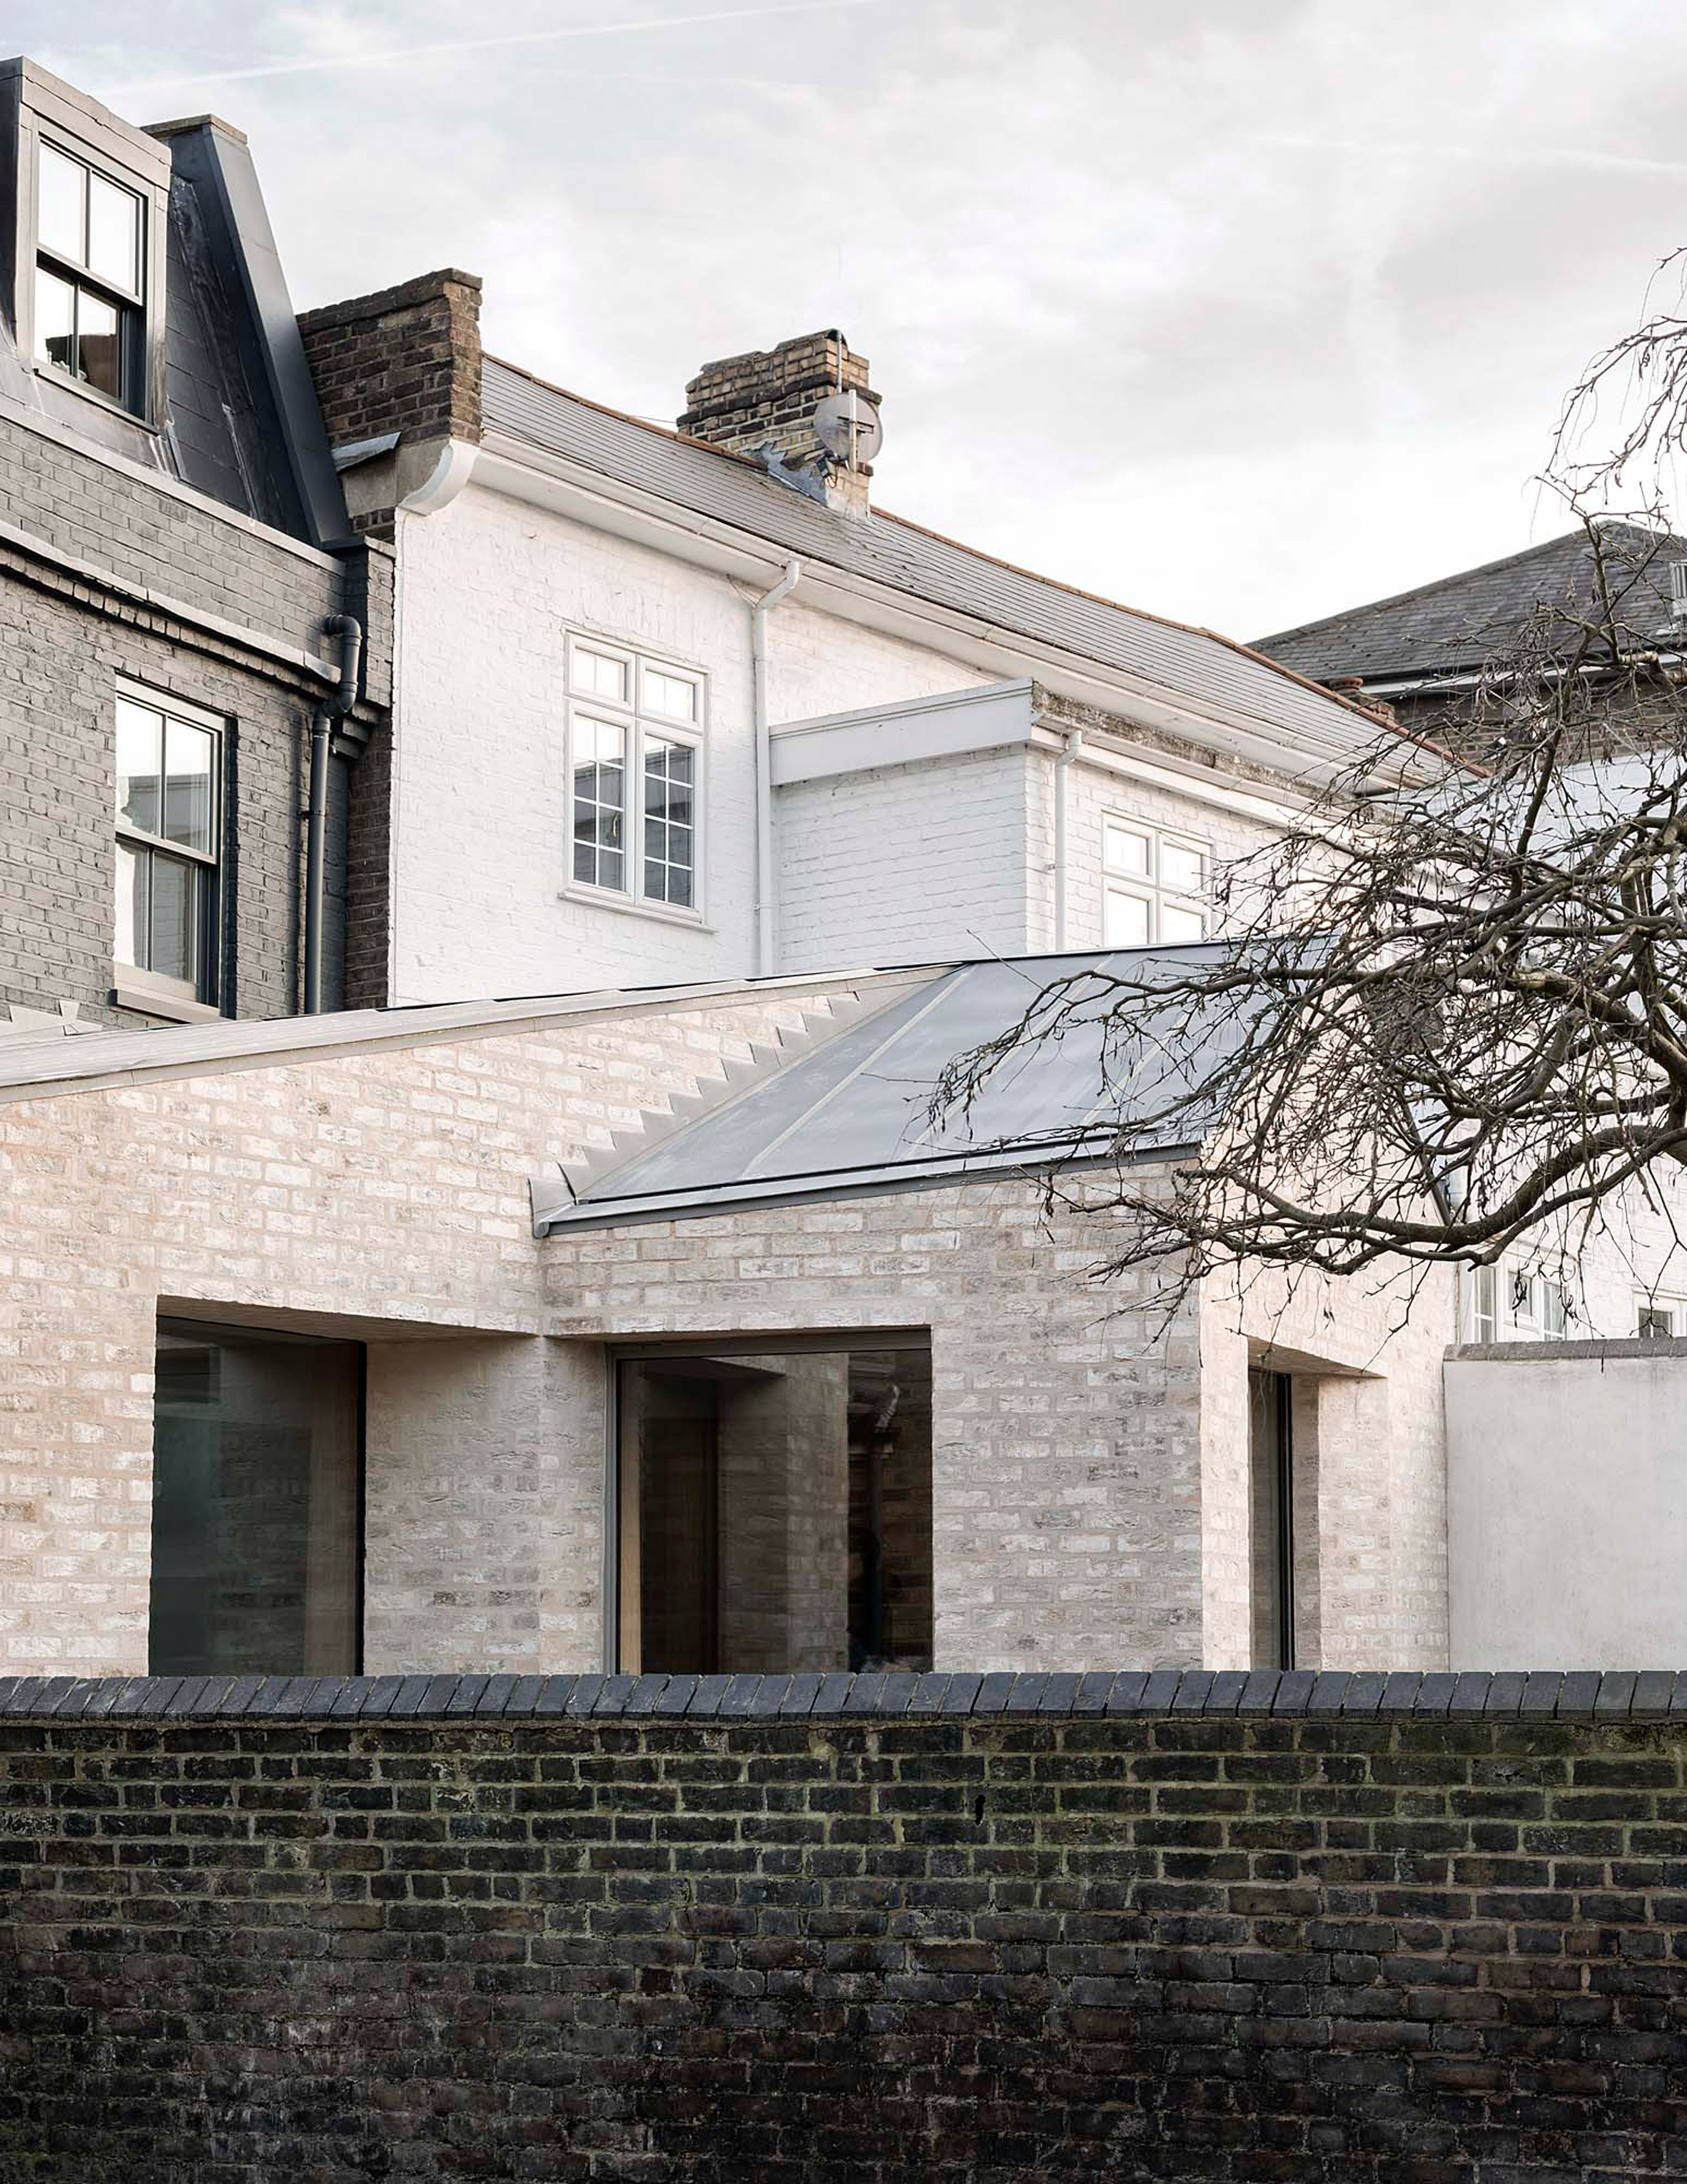 McLaren Excell adds contrasting pale-brick extension to black-painted Victorian house